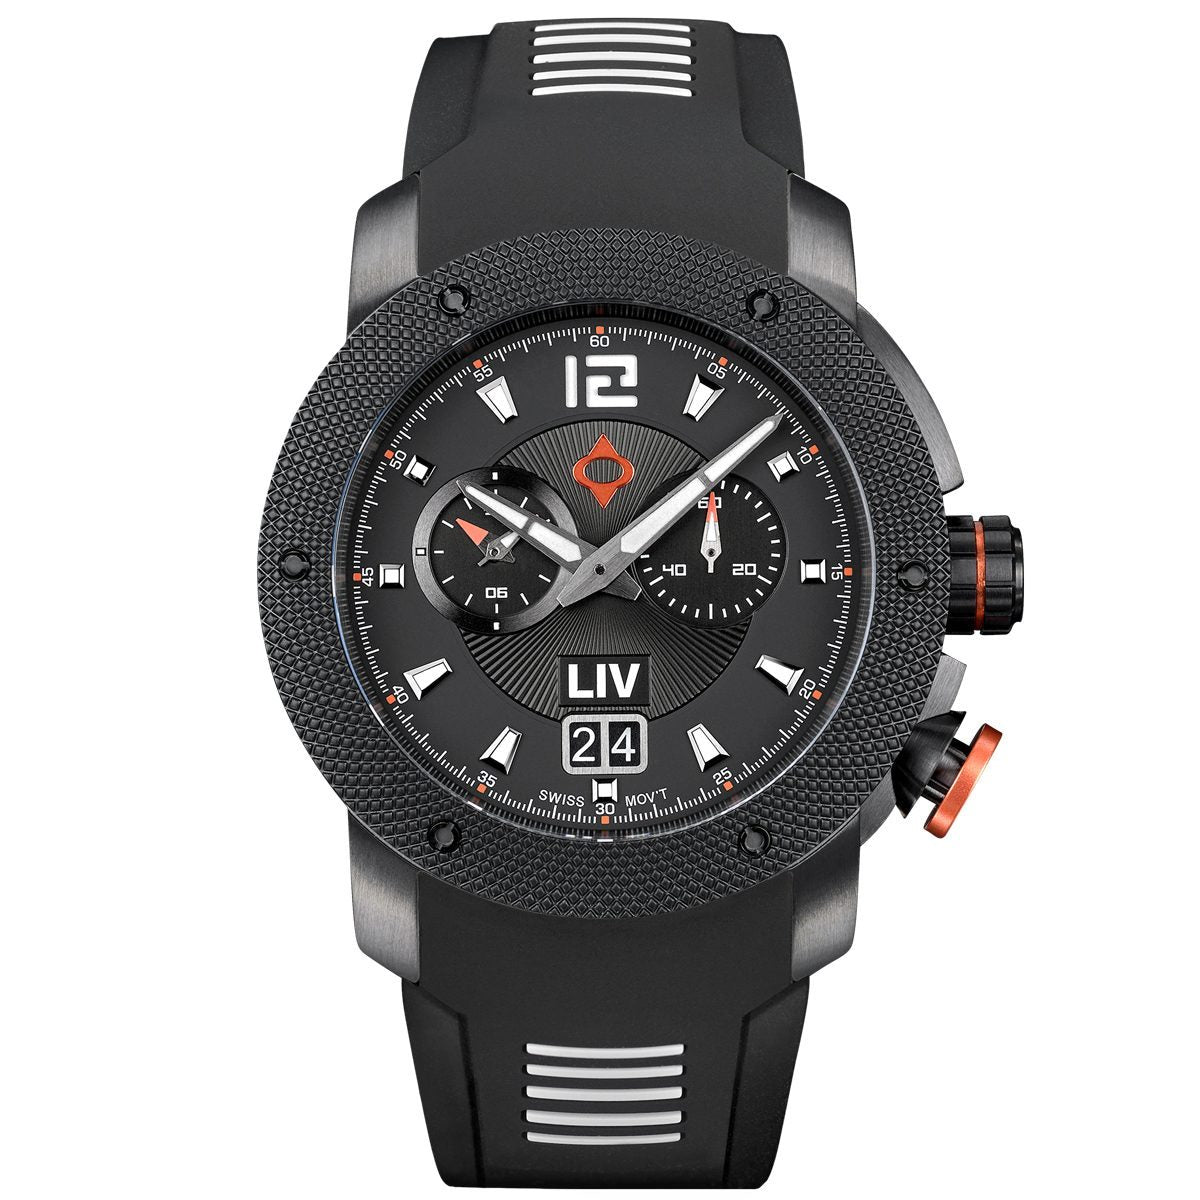 Swiss-Made GX Quartz Alarm by LIV Watches